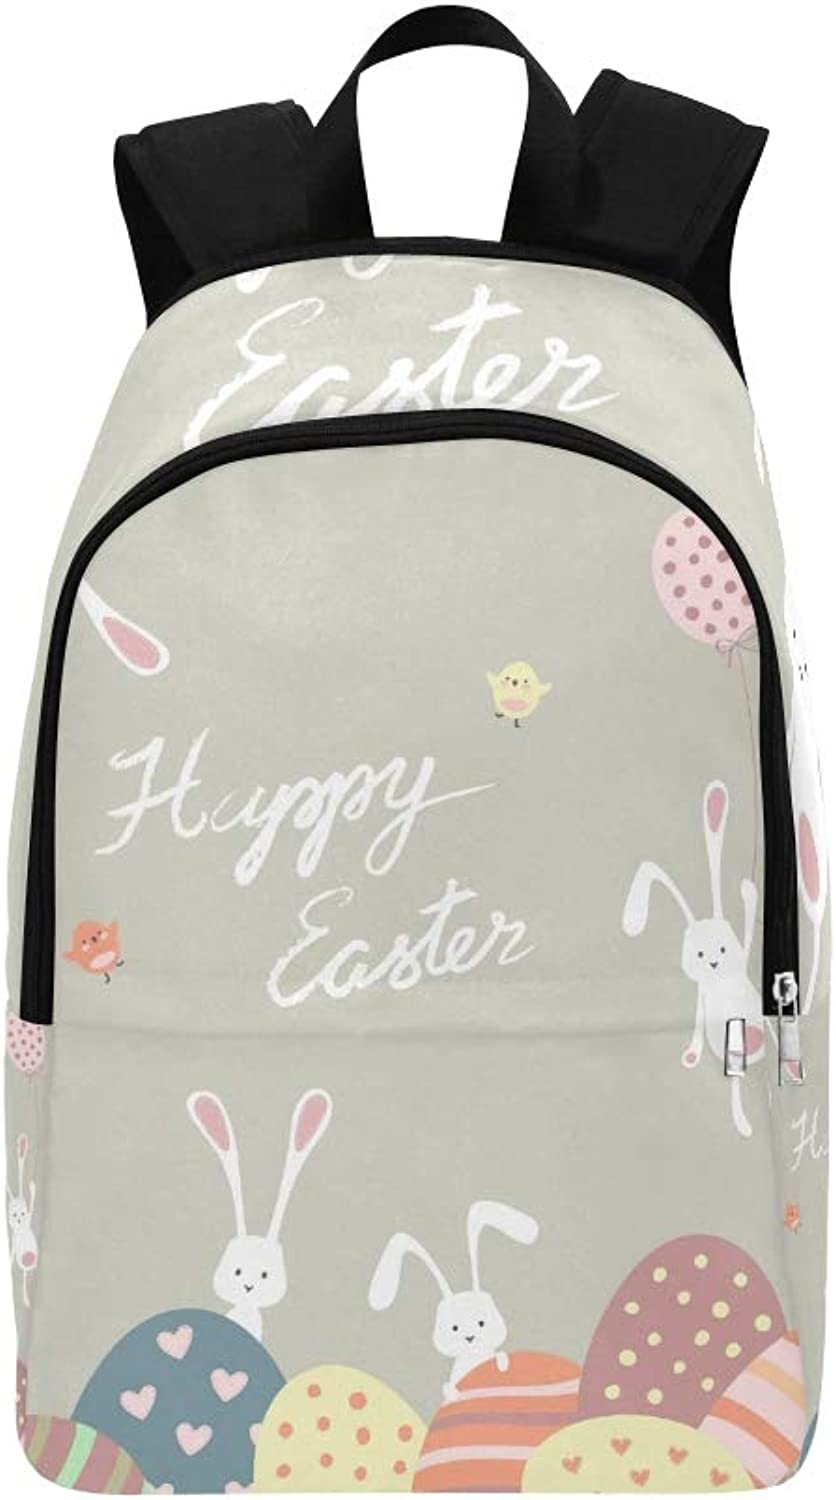 Easter Bunnies Easter Eggs Casual Daypack Travel Bag College School Backpack for Mens and Women